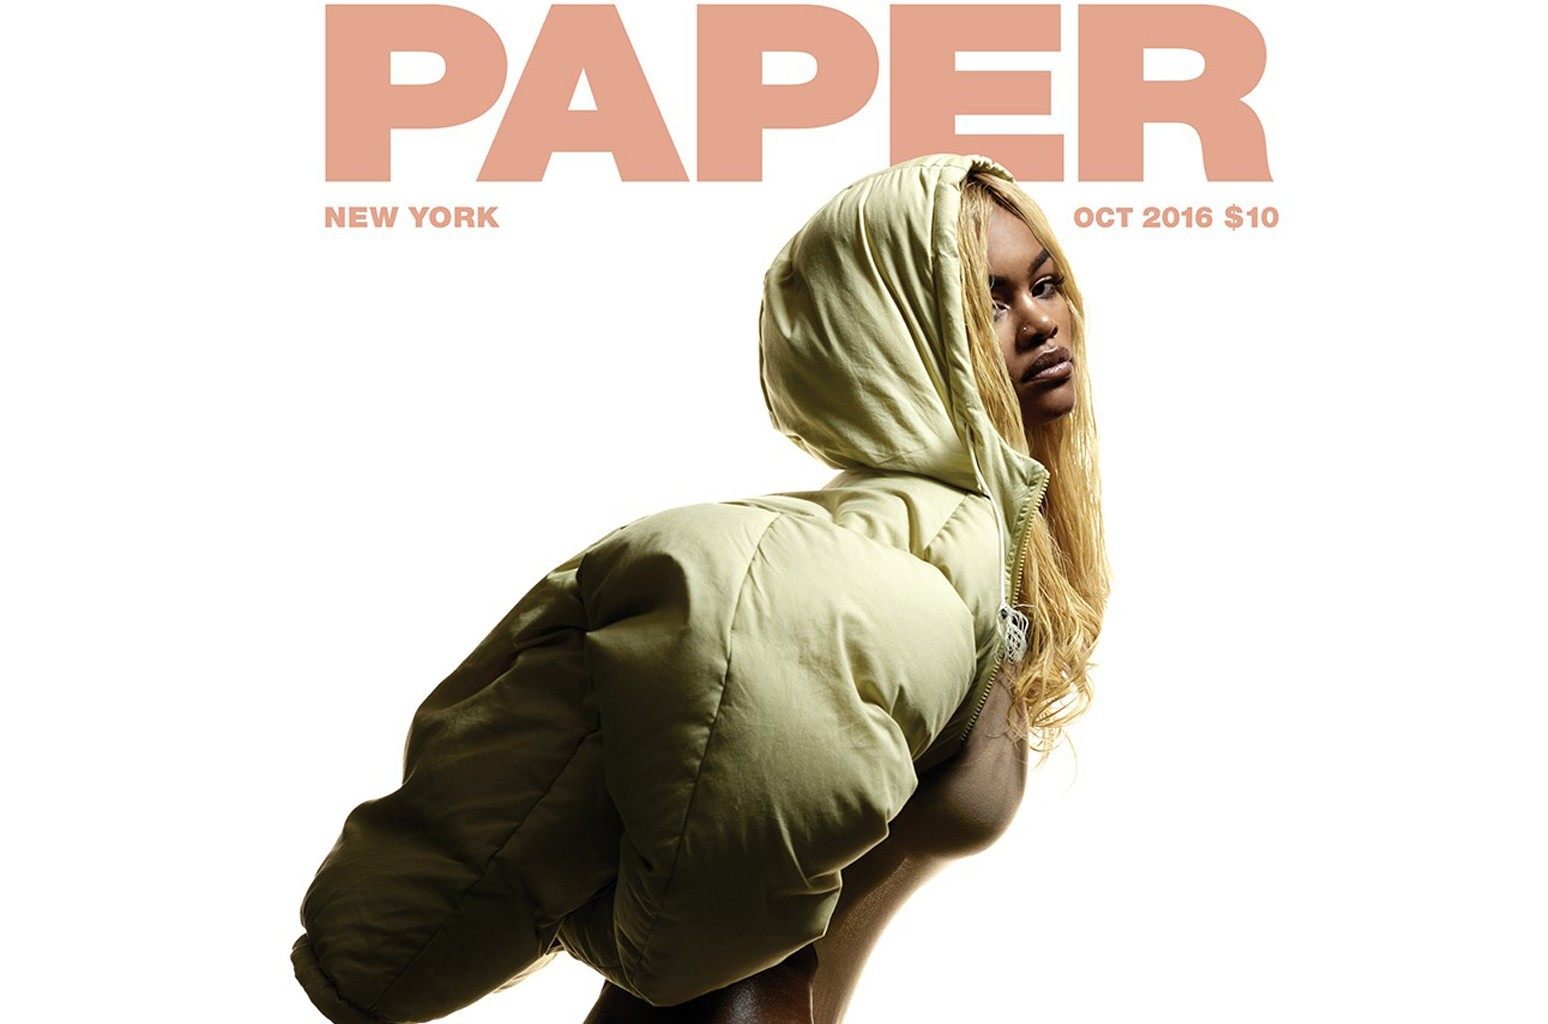 Teyana Taylor on the cover of the Oct. 2016 issue of Paper Magazine.